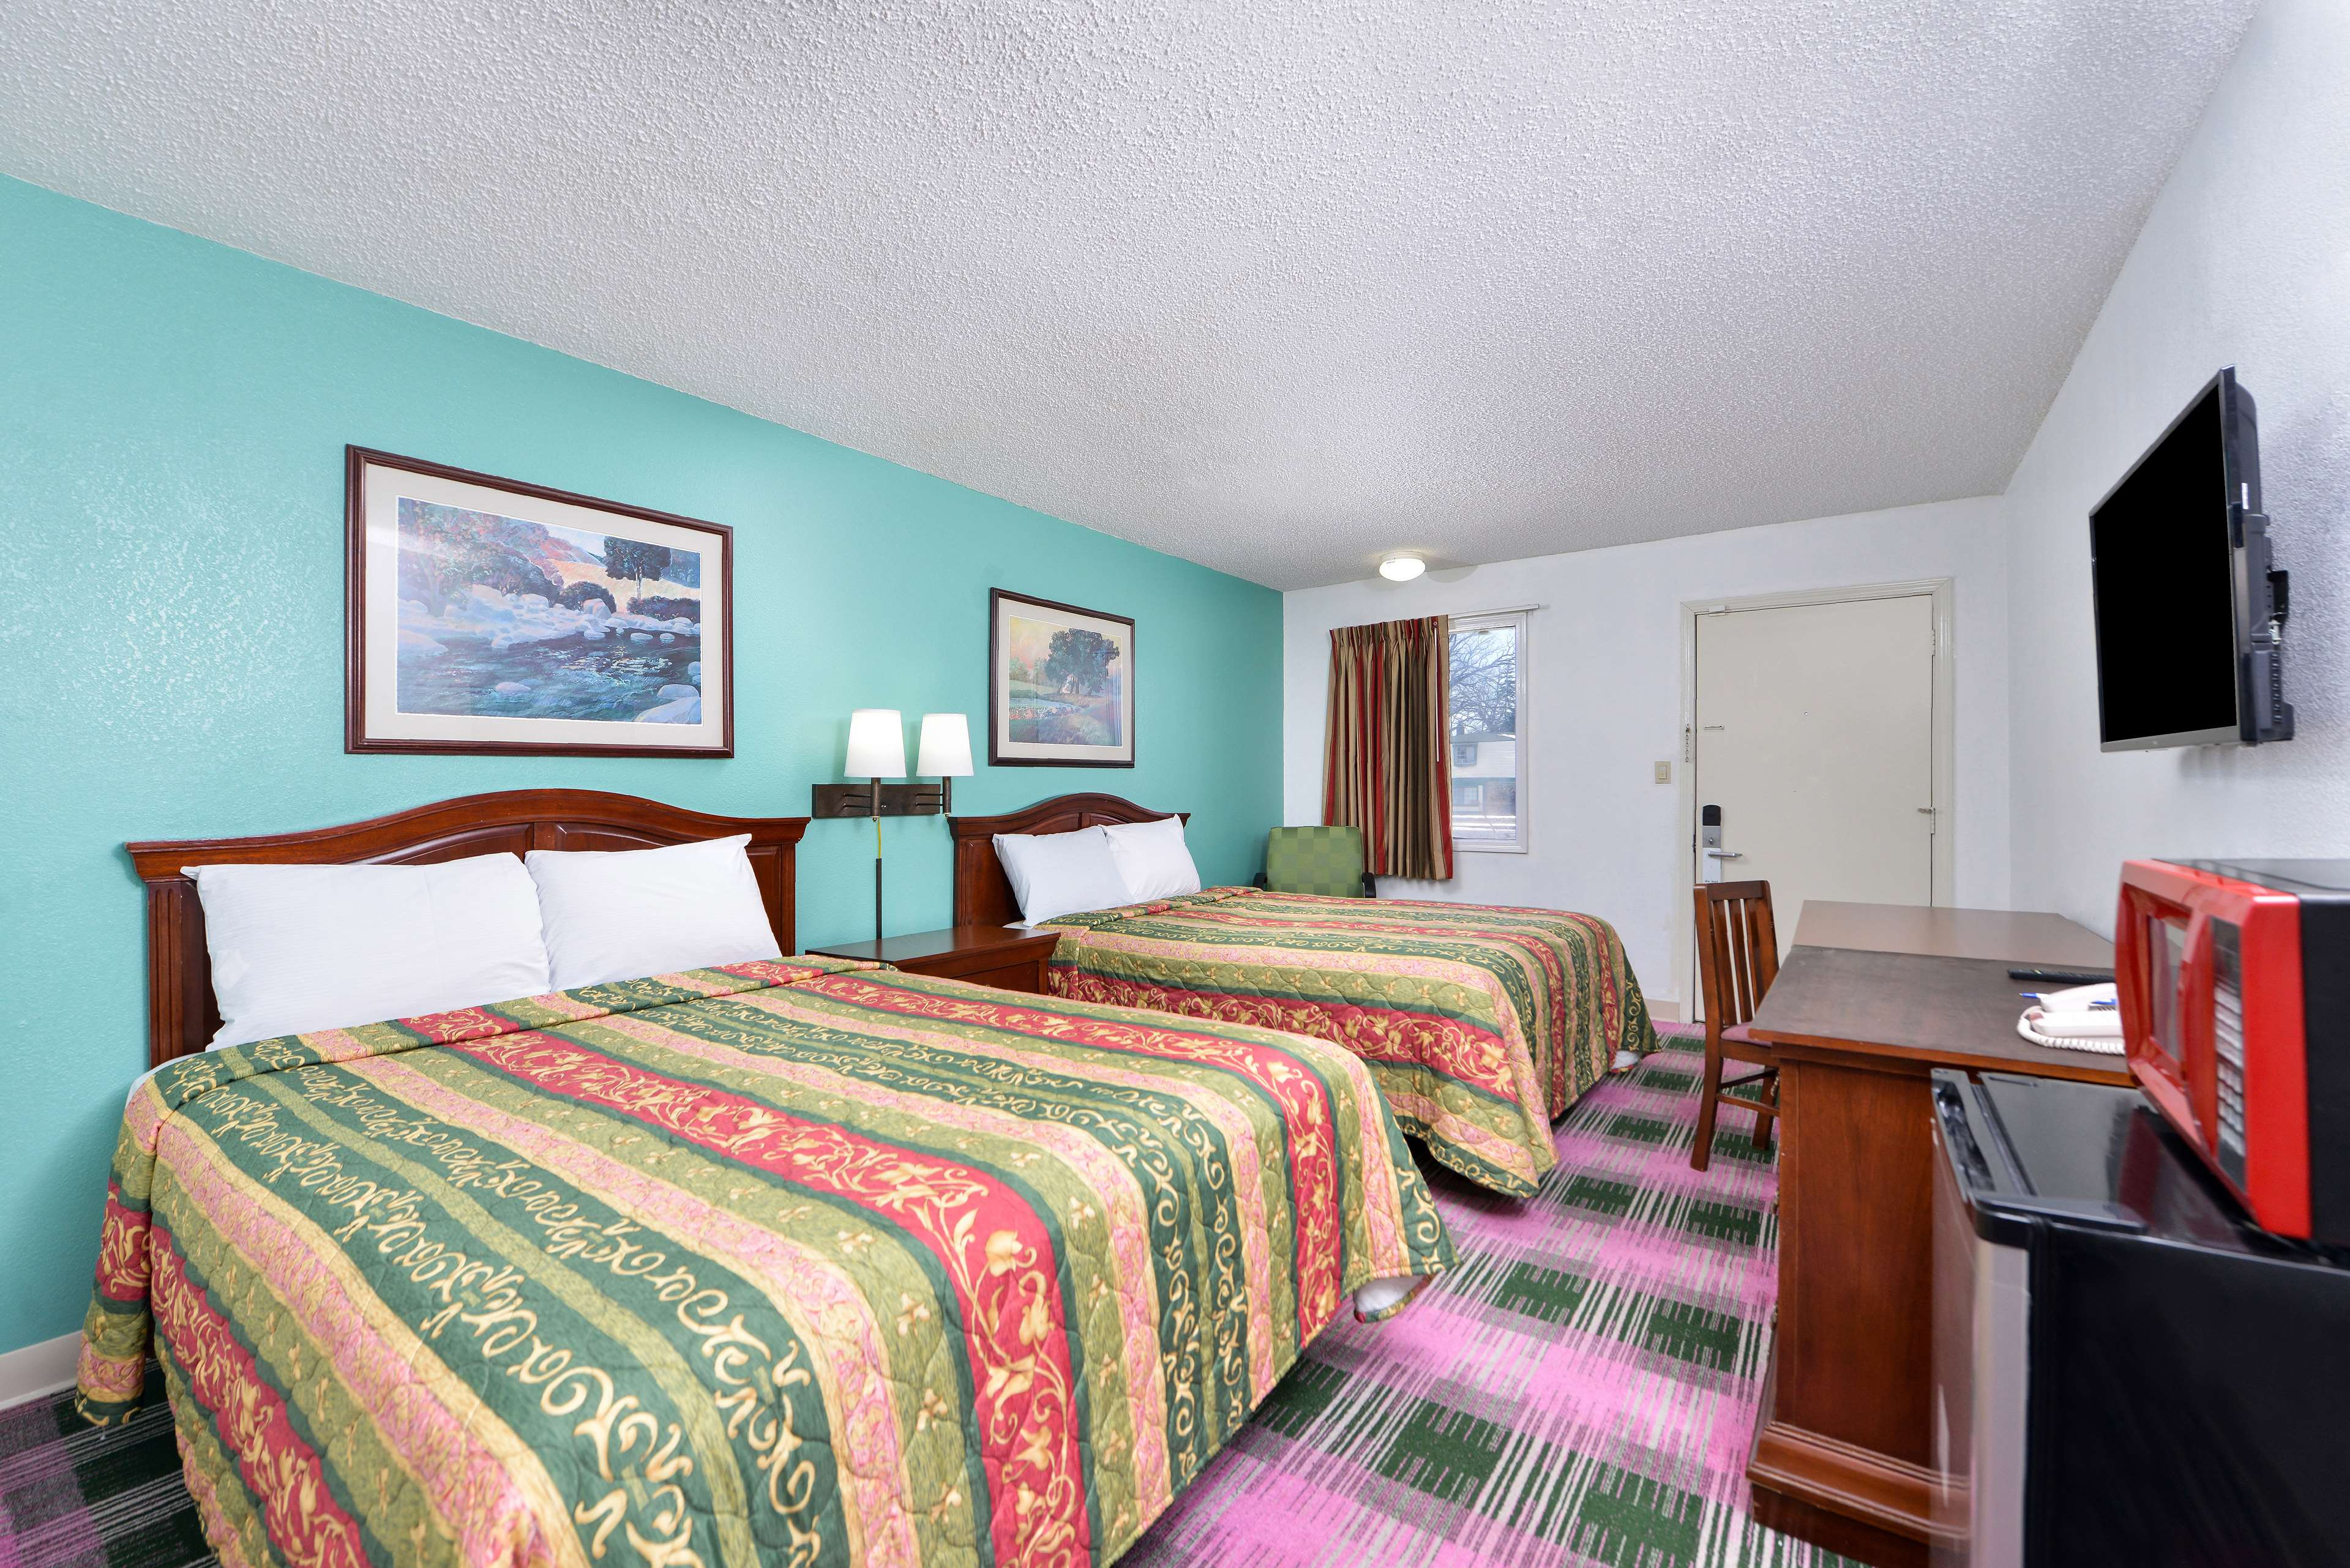 Americas Best Value Inn - Indy South image 13